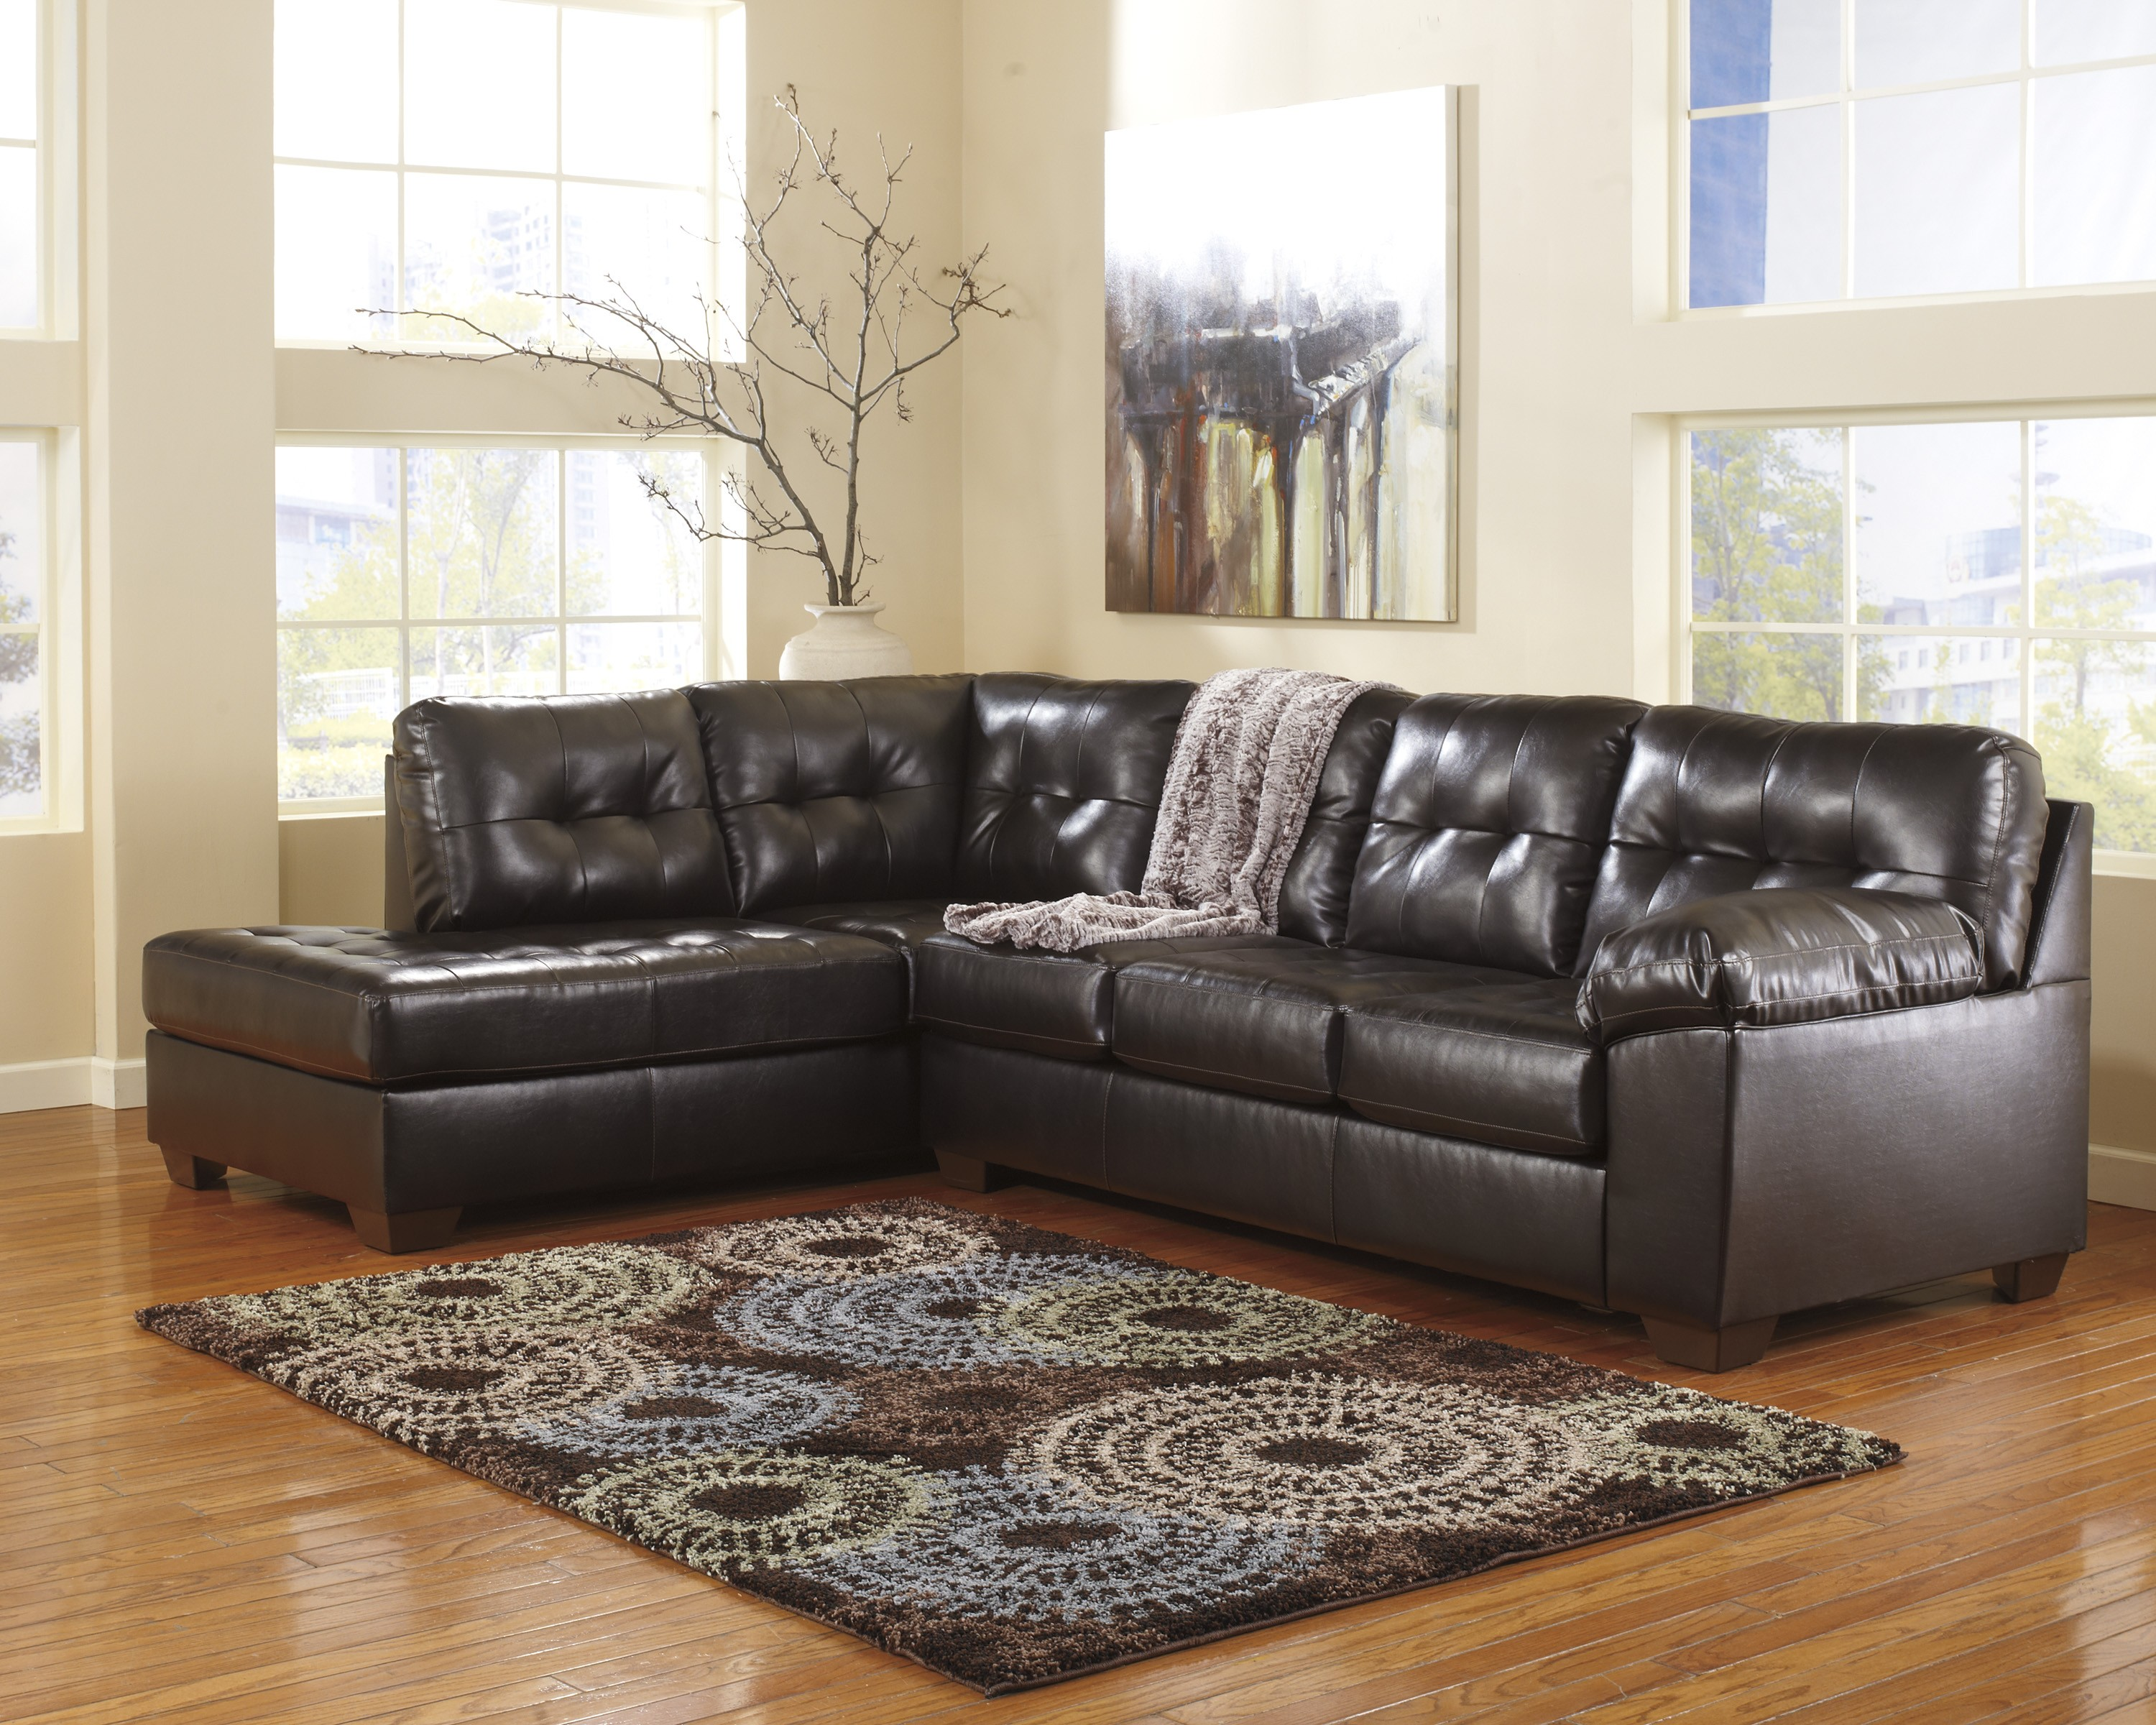 Alliston Durablend Chocolate Left Arm Facing Sectional From Ashley 20101 67 16 Coleman Furniture